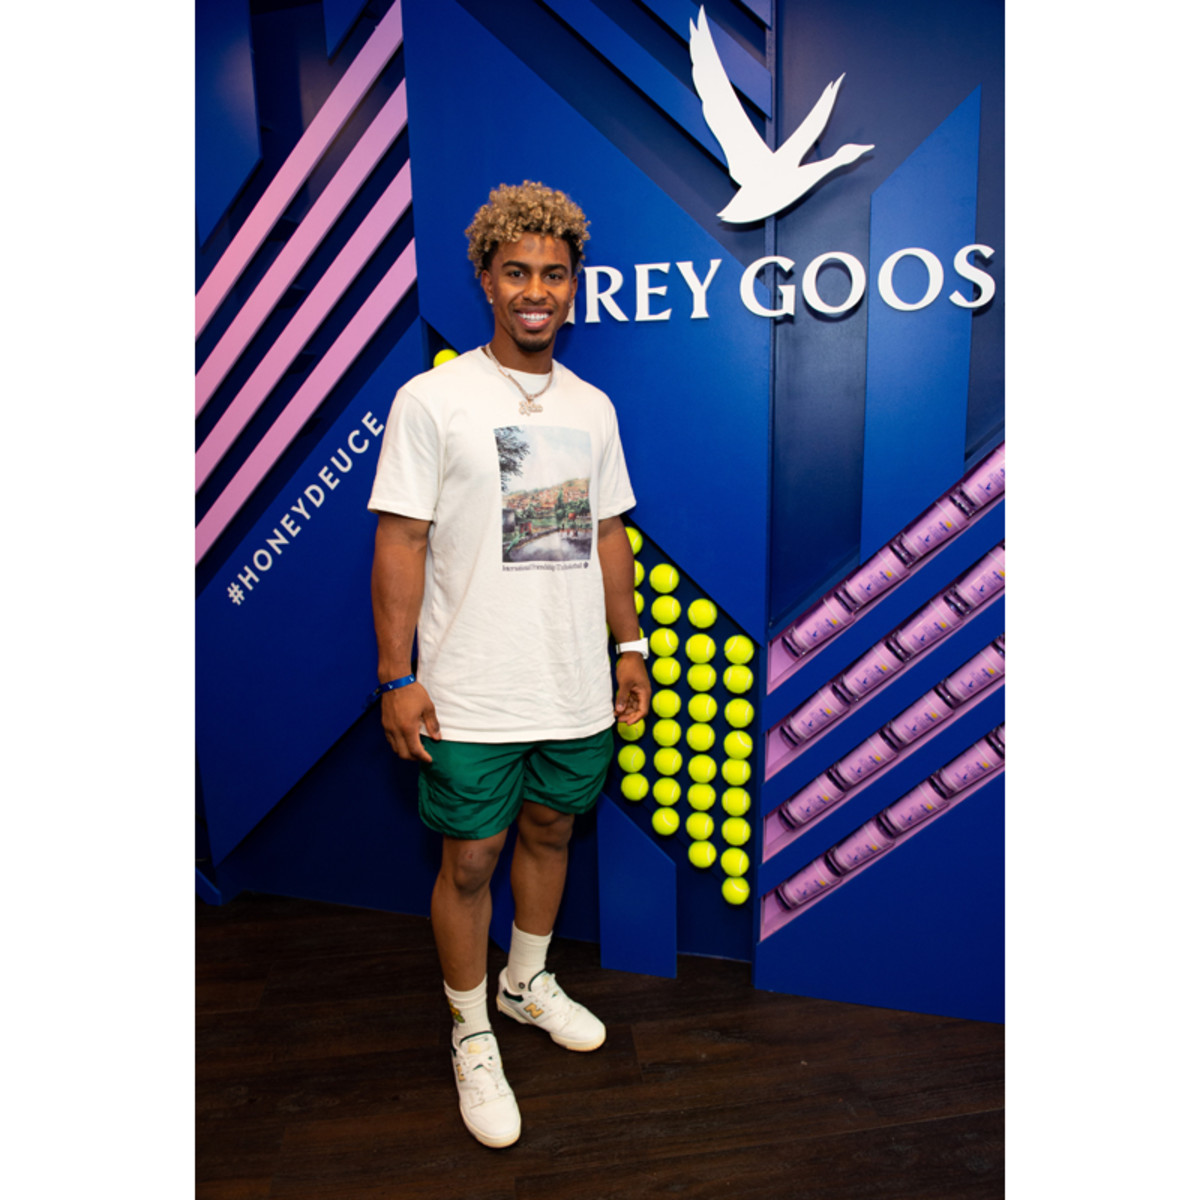 New York Mets player Francisco Lindor watches the 2021 US Open from the Grey Goose suite on August 30th.